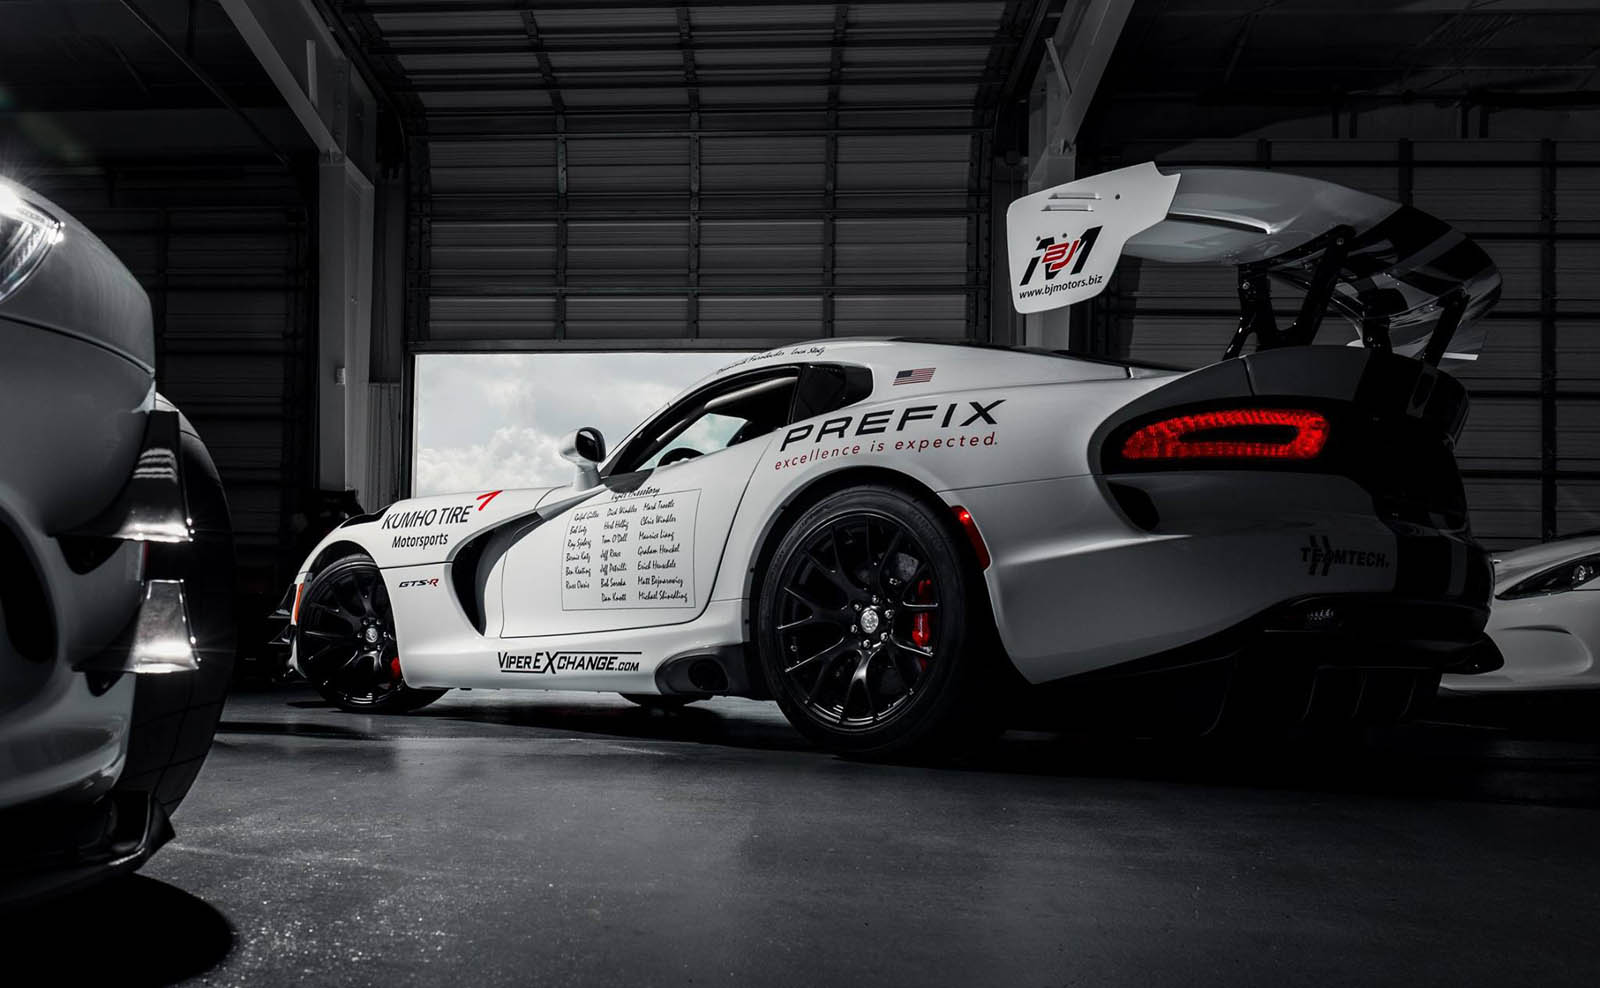 Viper ACR es Within Spitting Distance 7 Minutes At